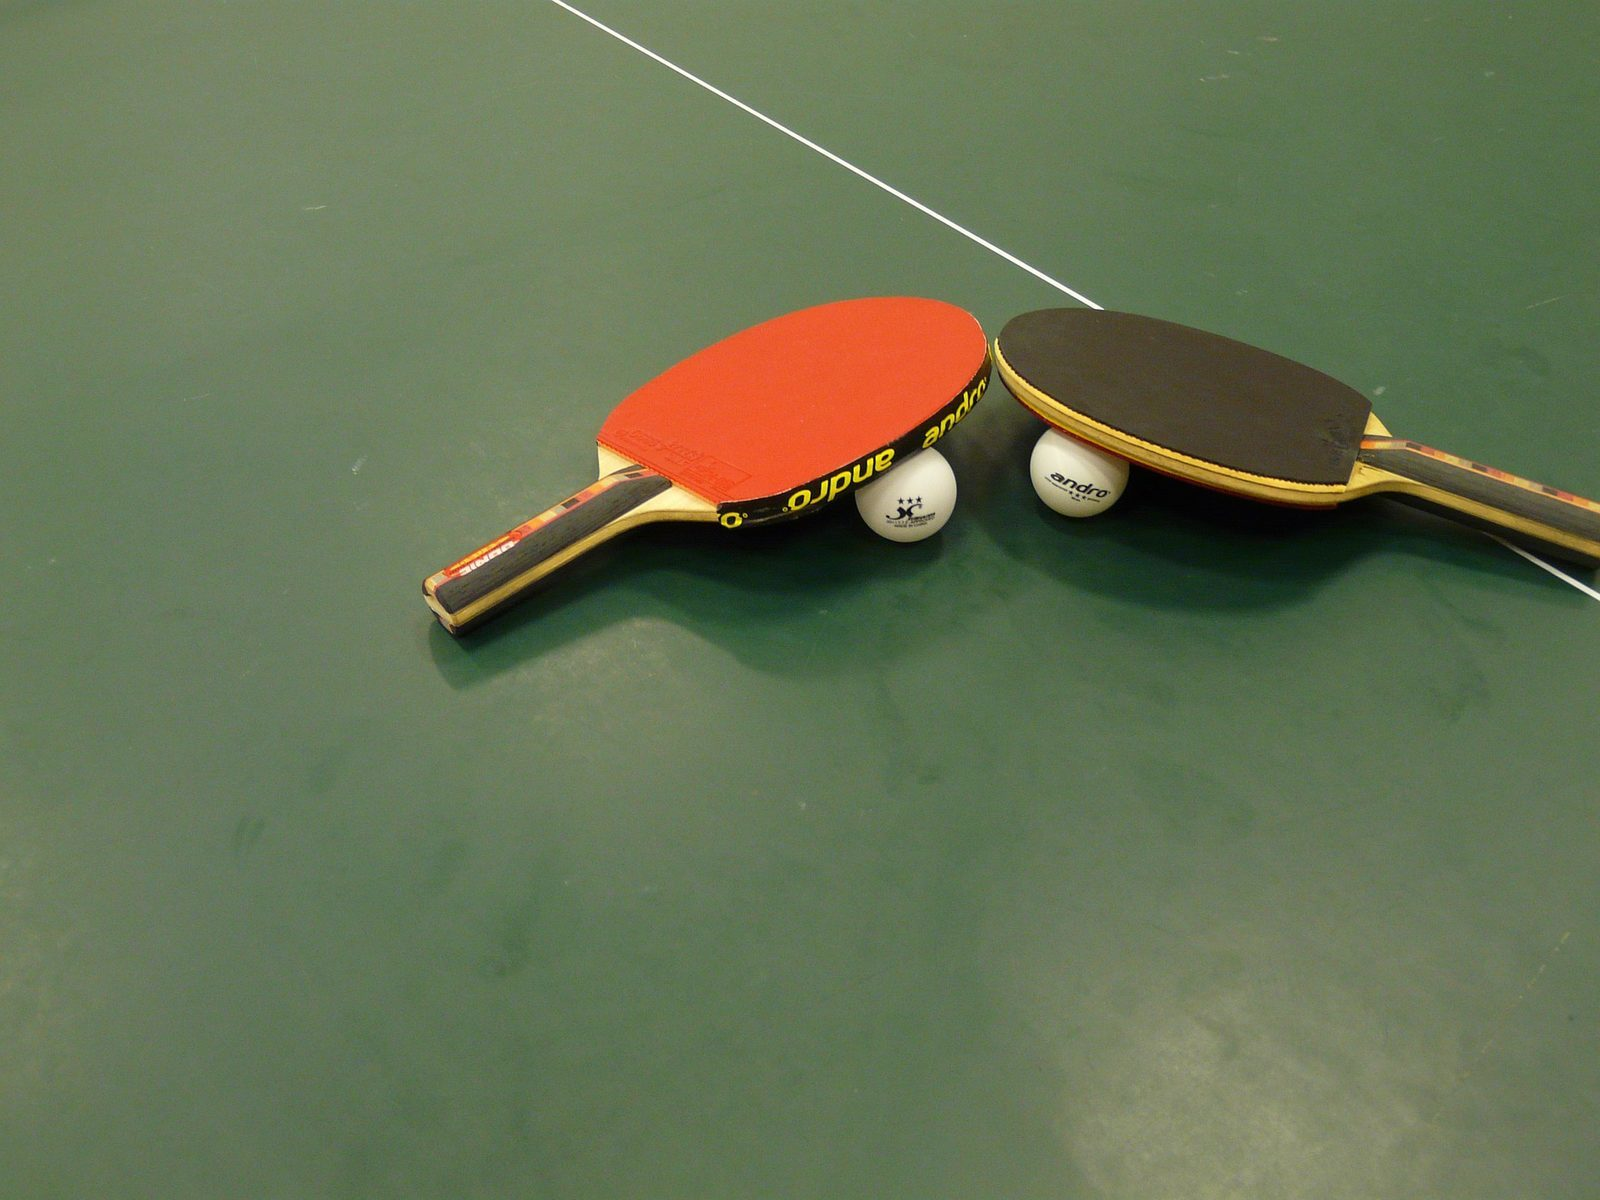 Table tennis table